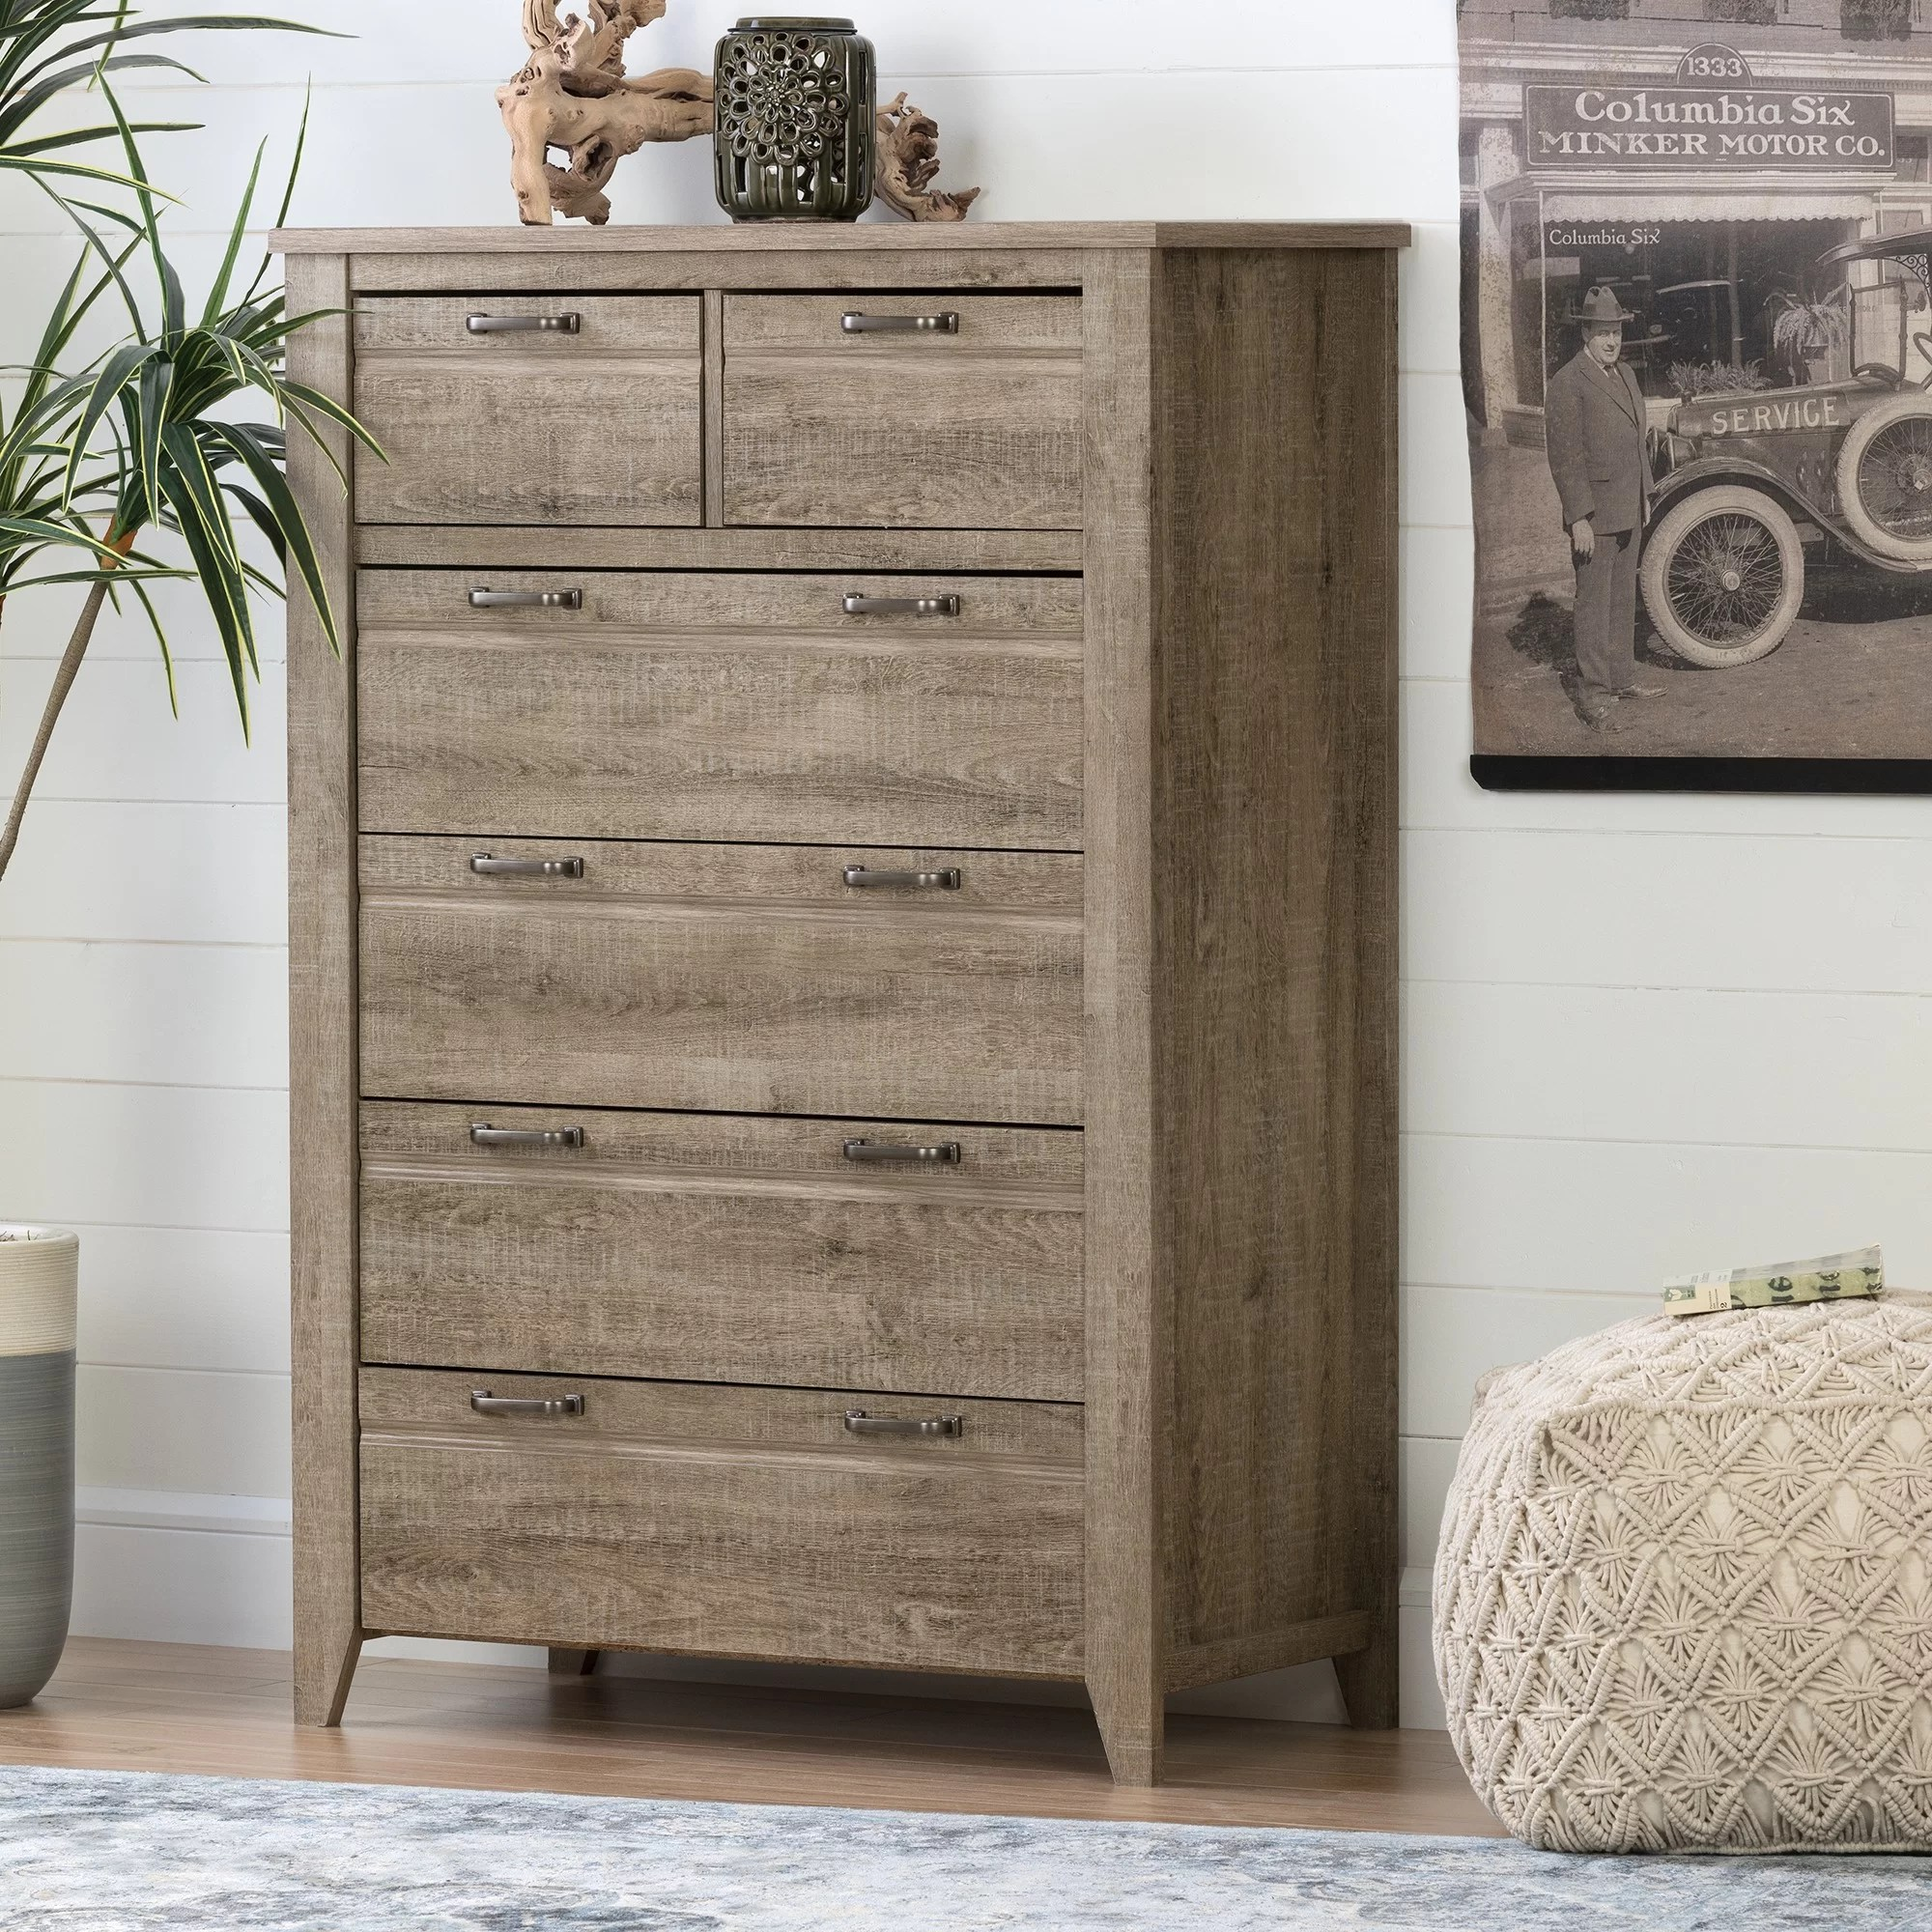 6 Drawer Chest Of Drawers Lionel 6 Drawer Chest